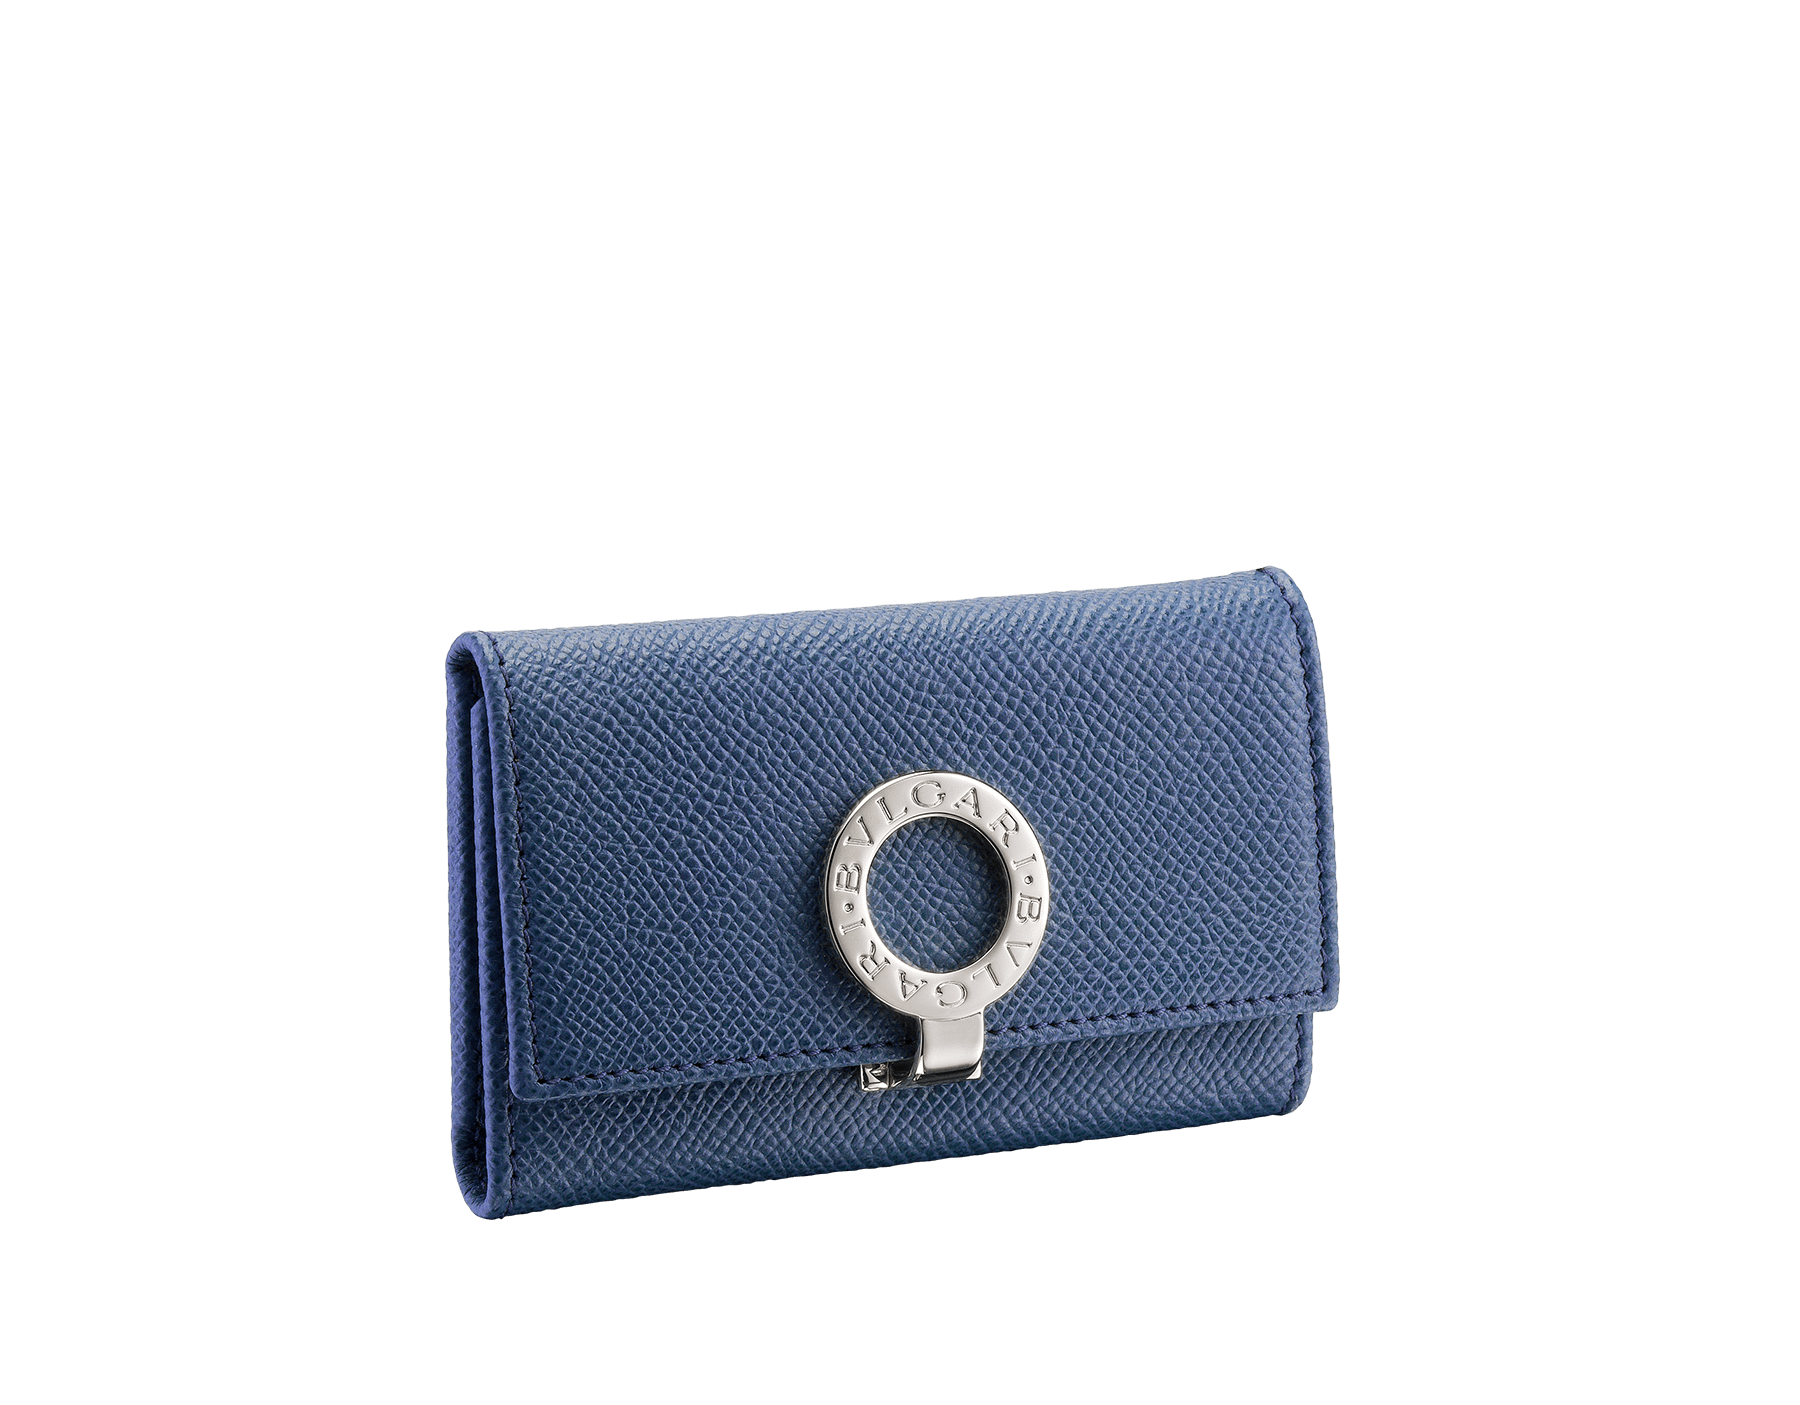 Small keyholder in denim sapphire grain calf leather and bordeaux nappa lining. Iconic brass palladium plated clip featuring the BVLGARI BVLGARI motif. 286891 image 1